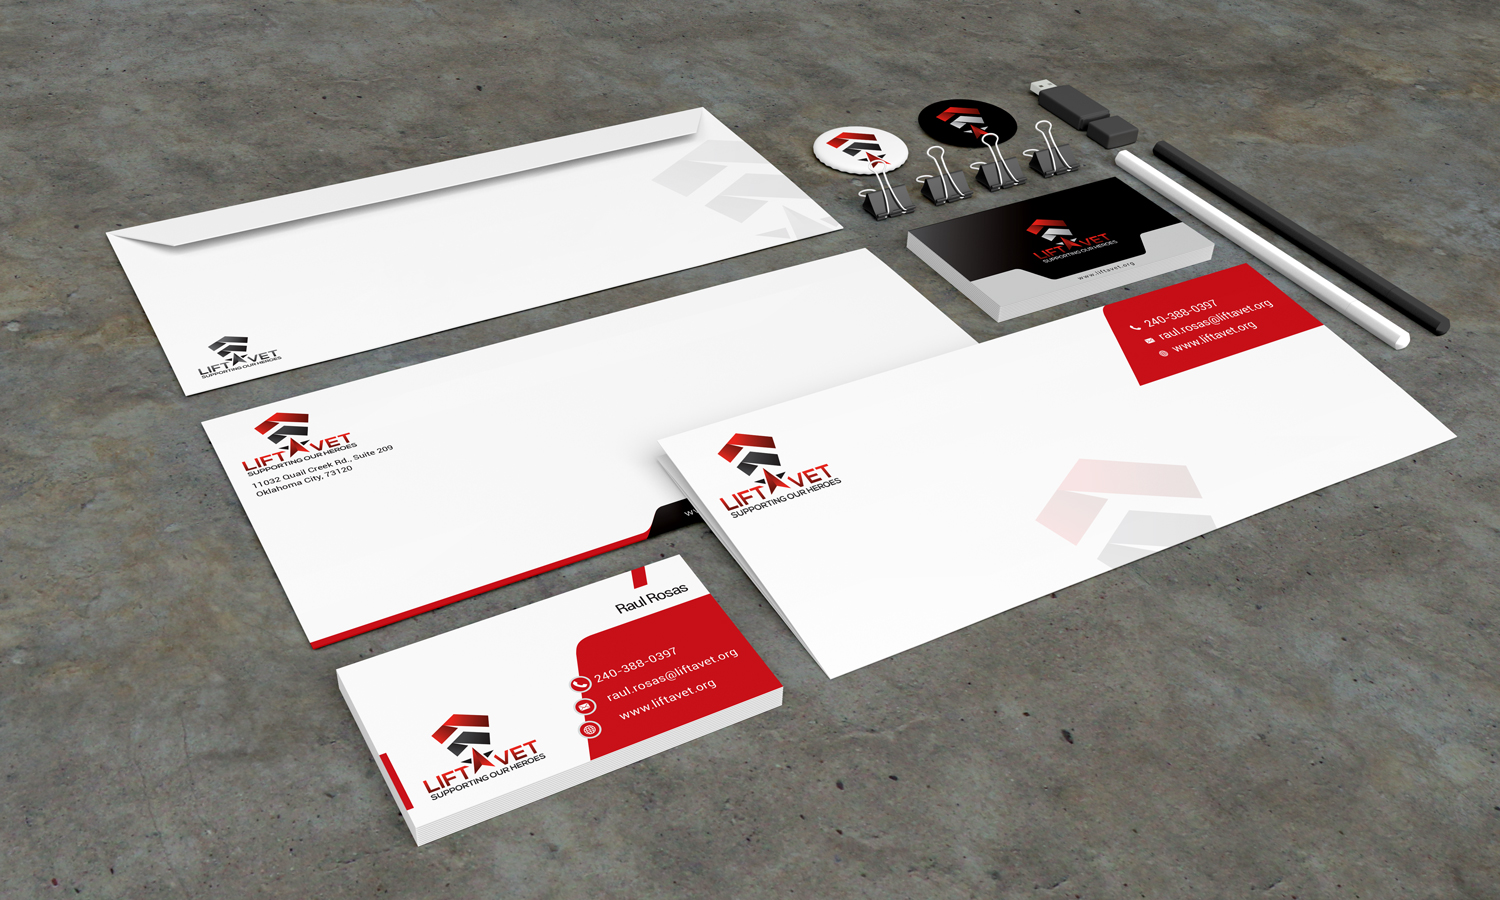 Stationery Design Template for Lift Vet - Logo Design Deck